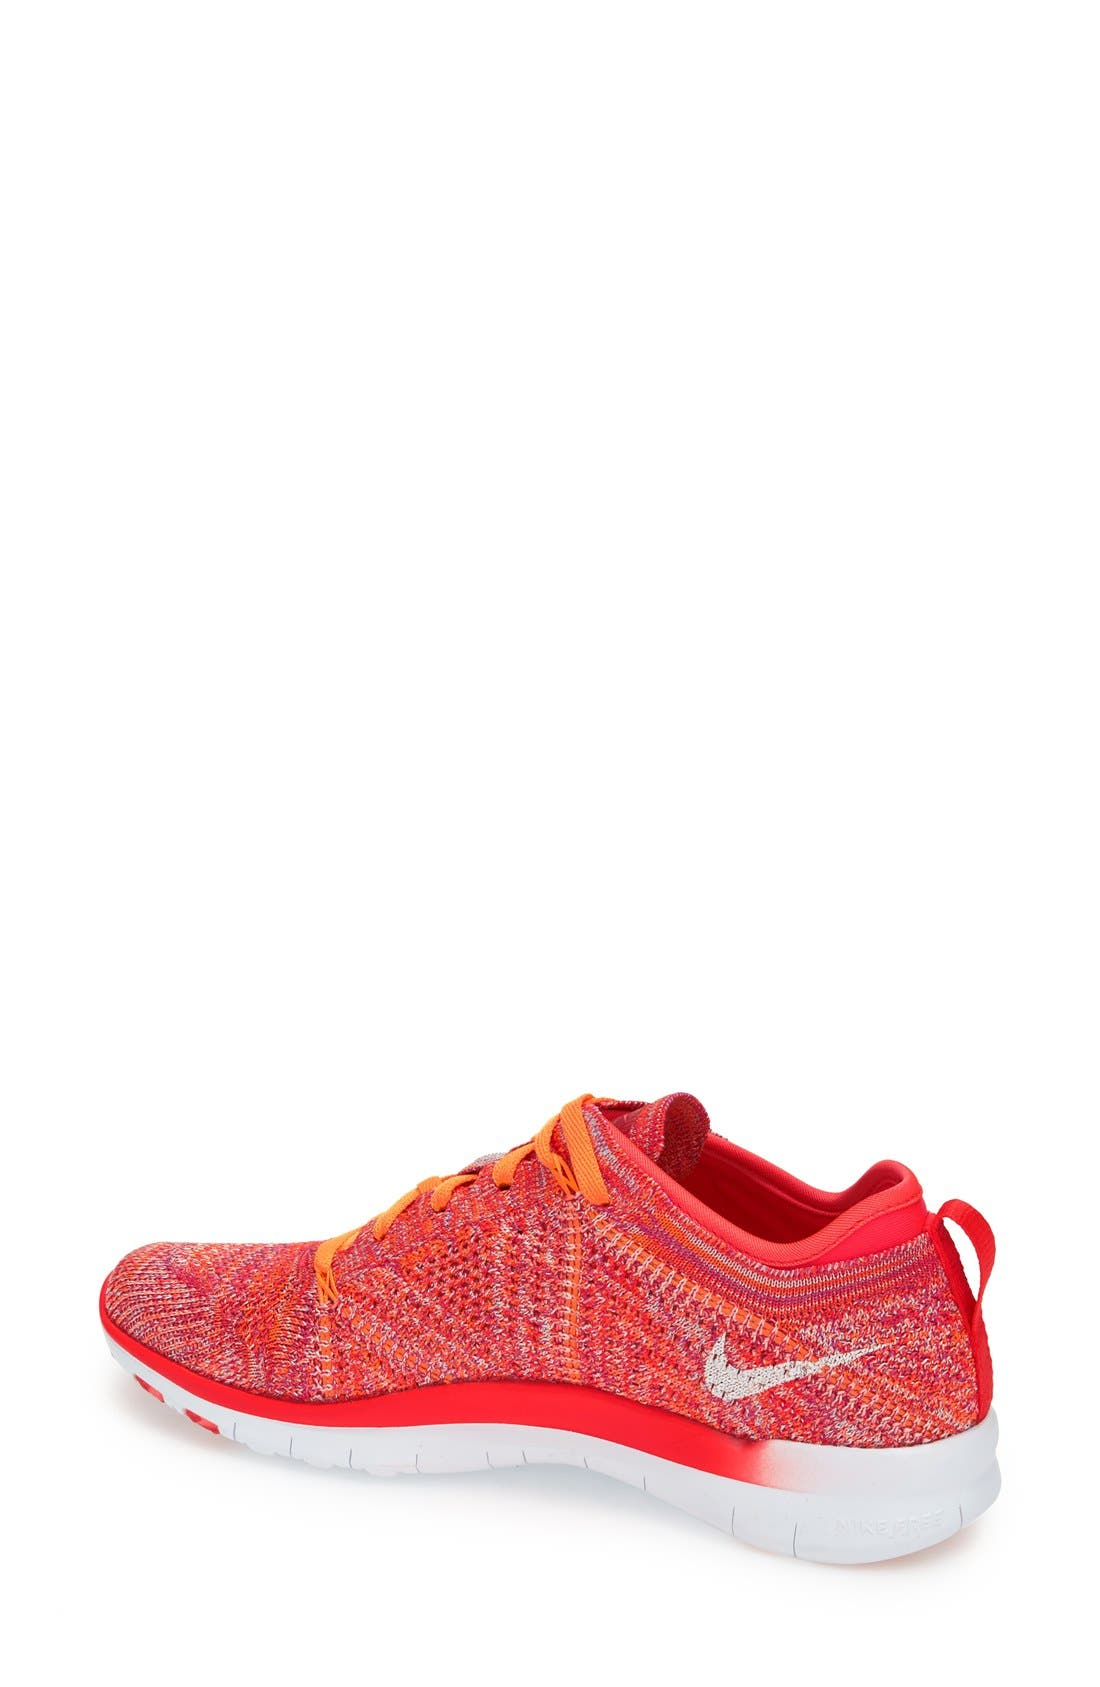 'Free Flyknit 5.0 TR' Training Shoe,                             Alternate thumbnail 31, color,